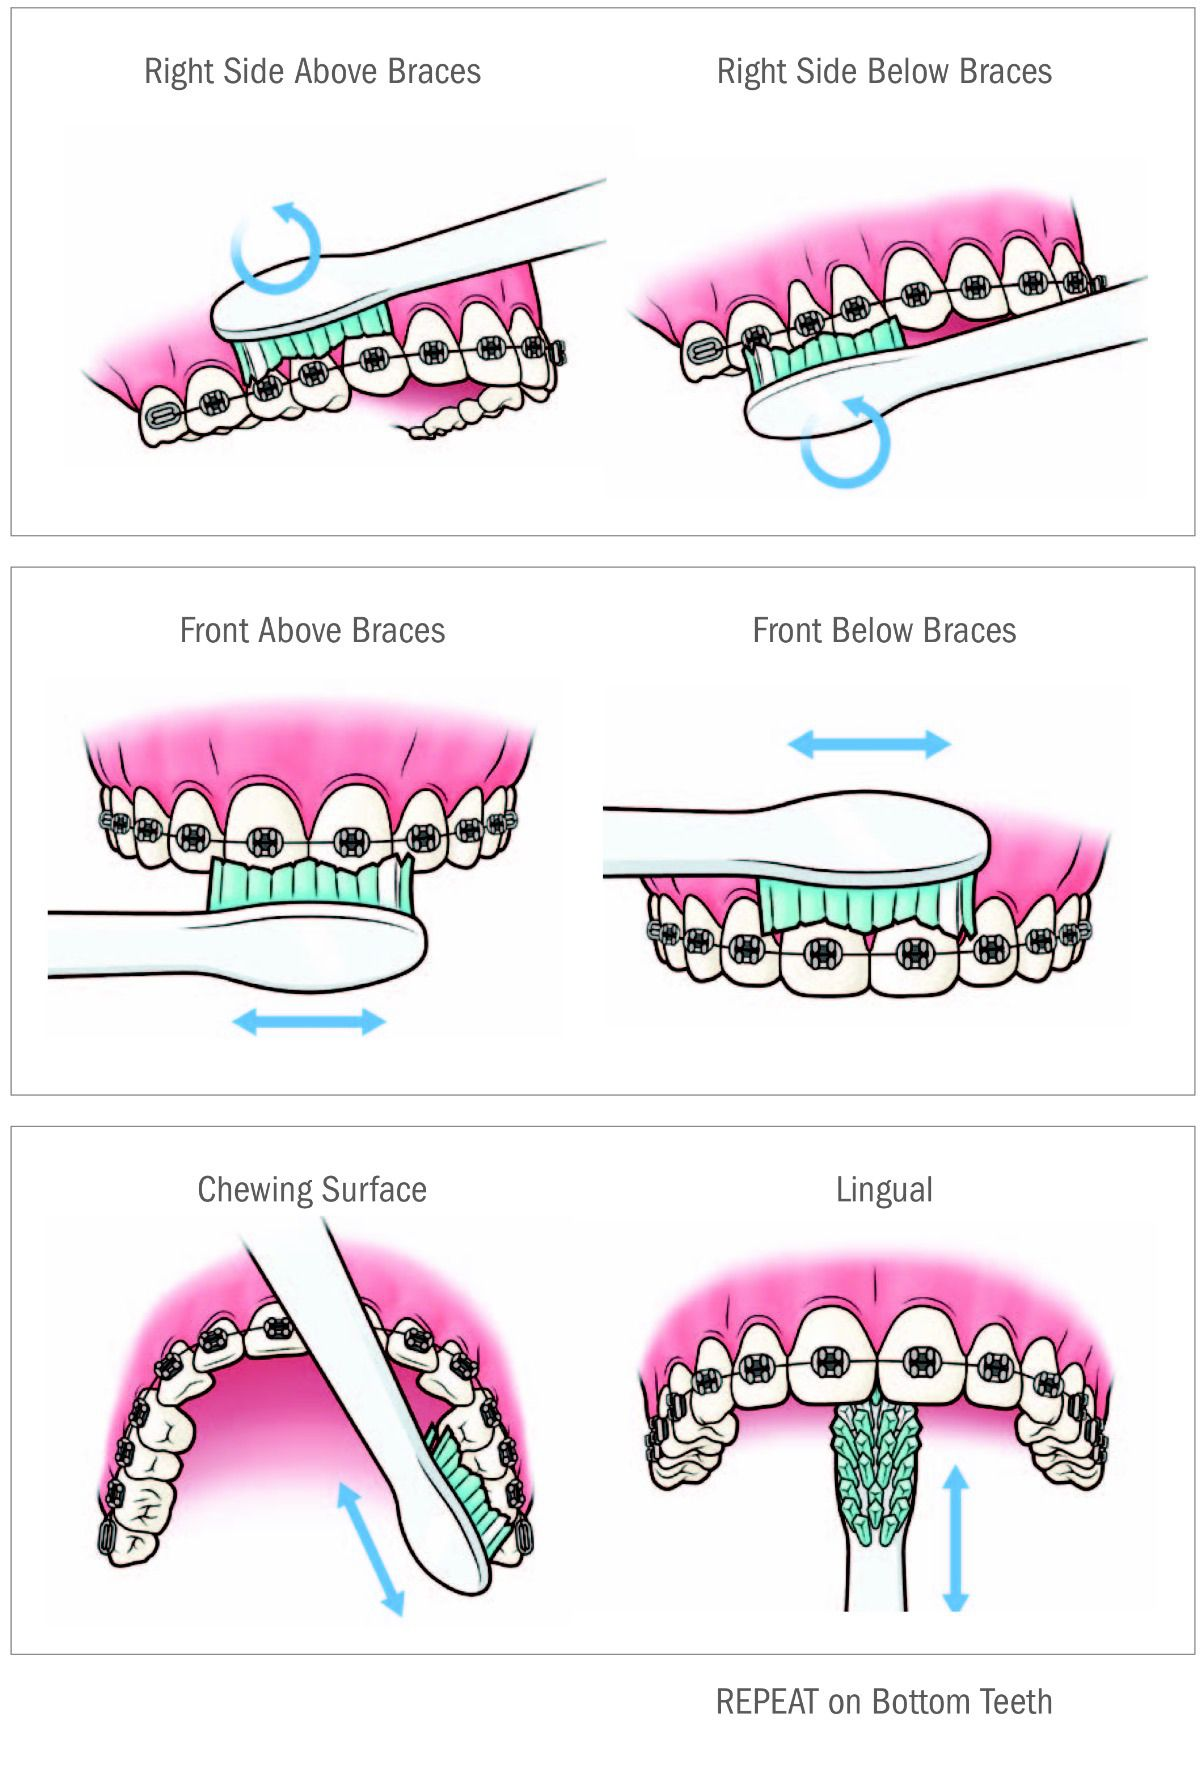 Braces clipart right. Healthy smiles both in